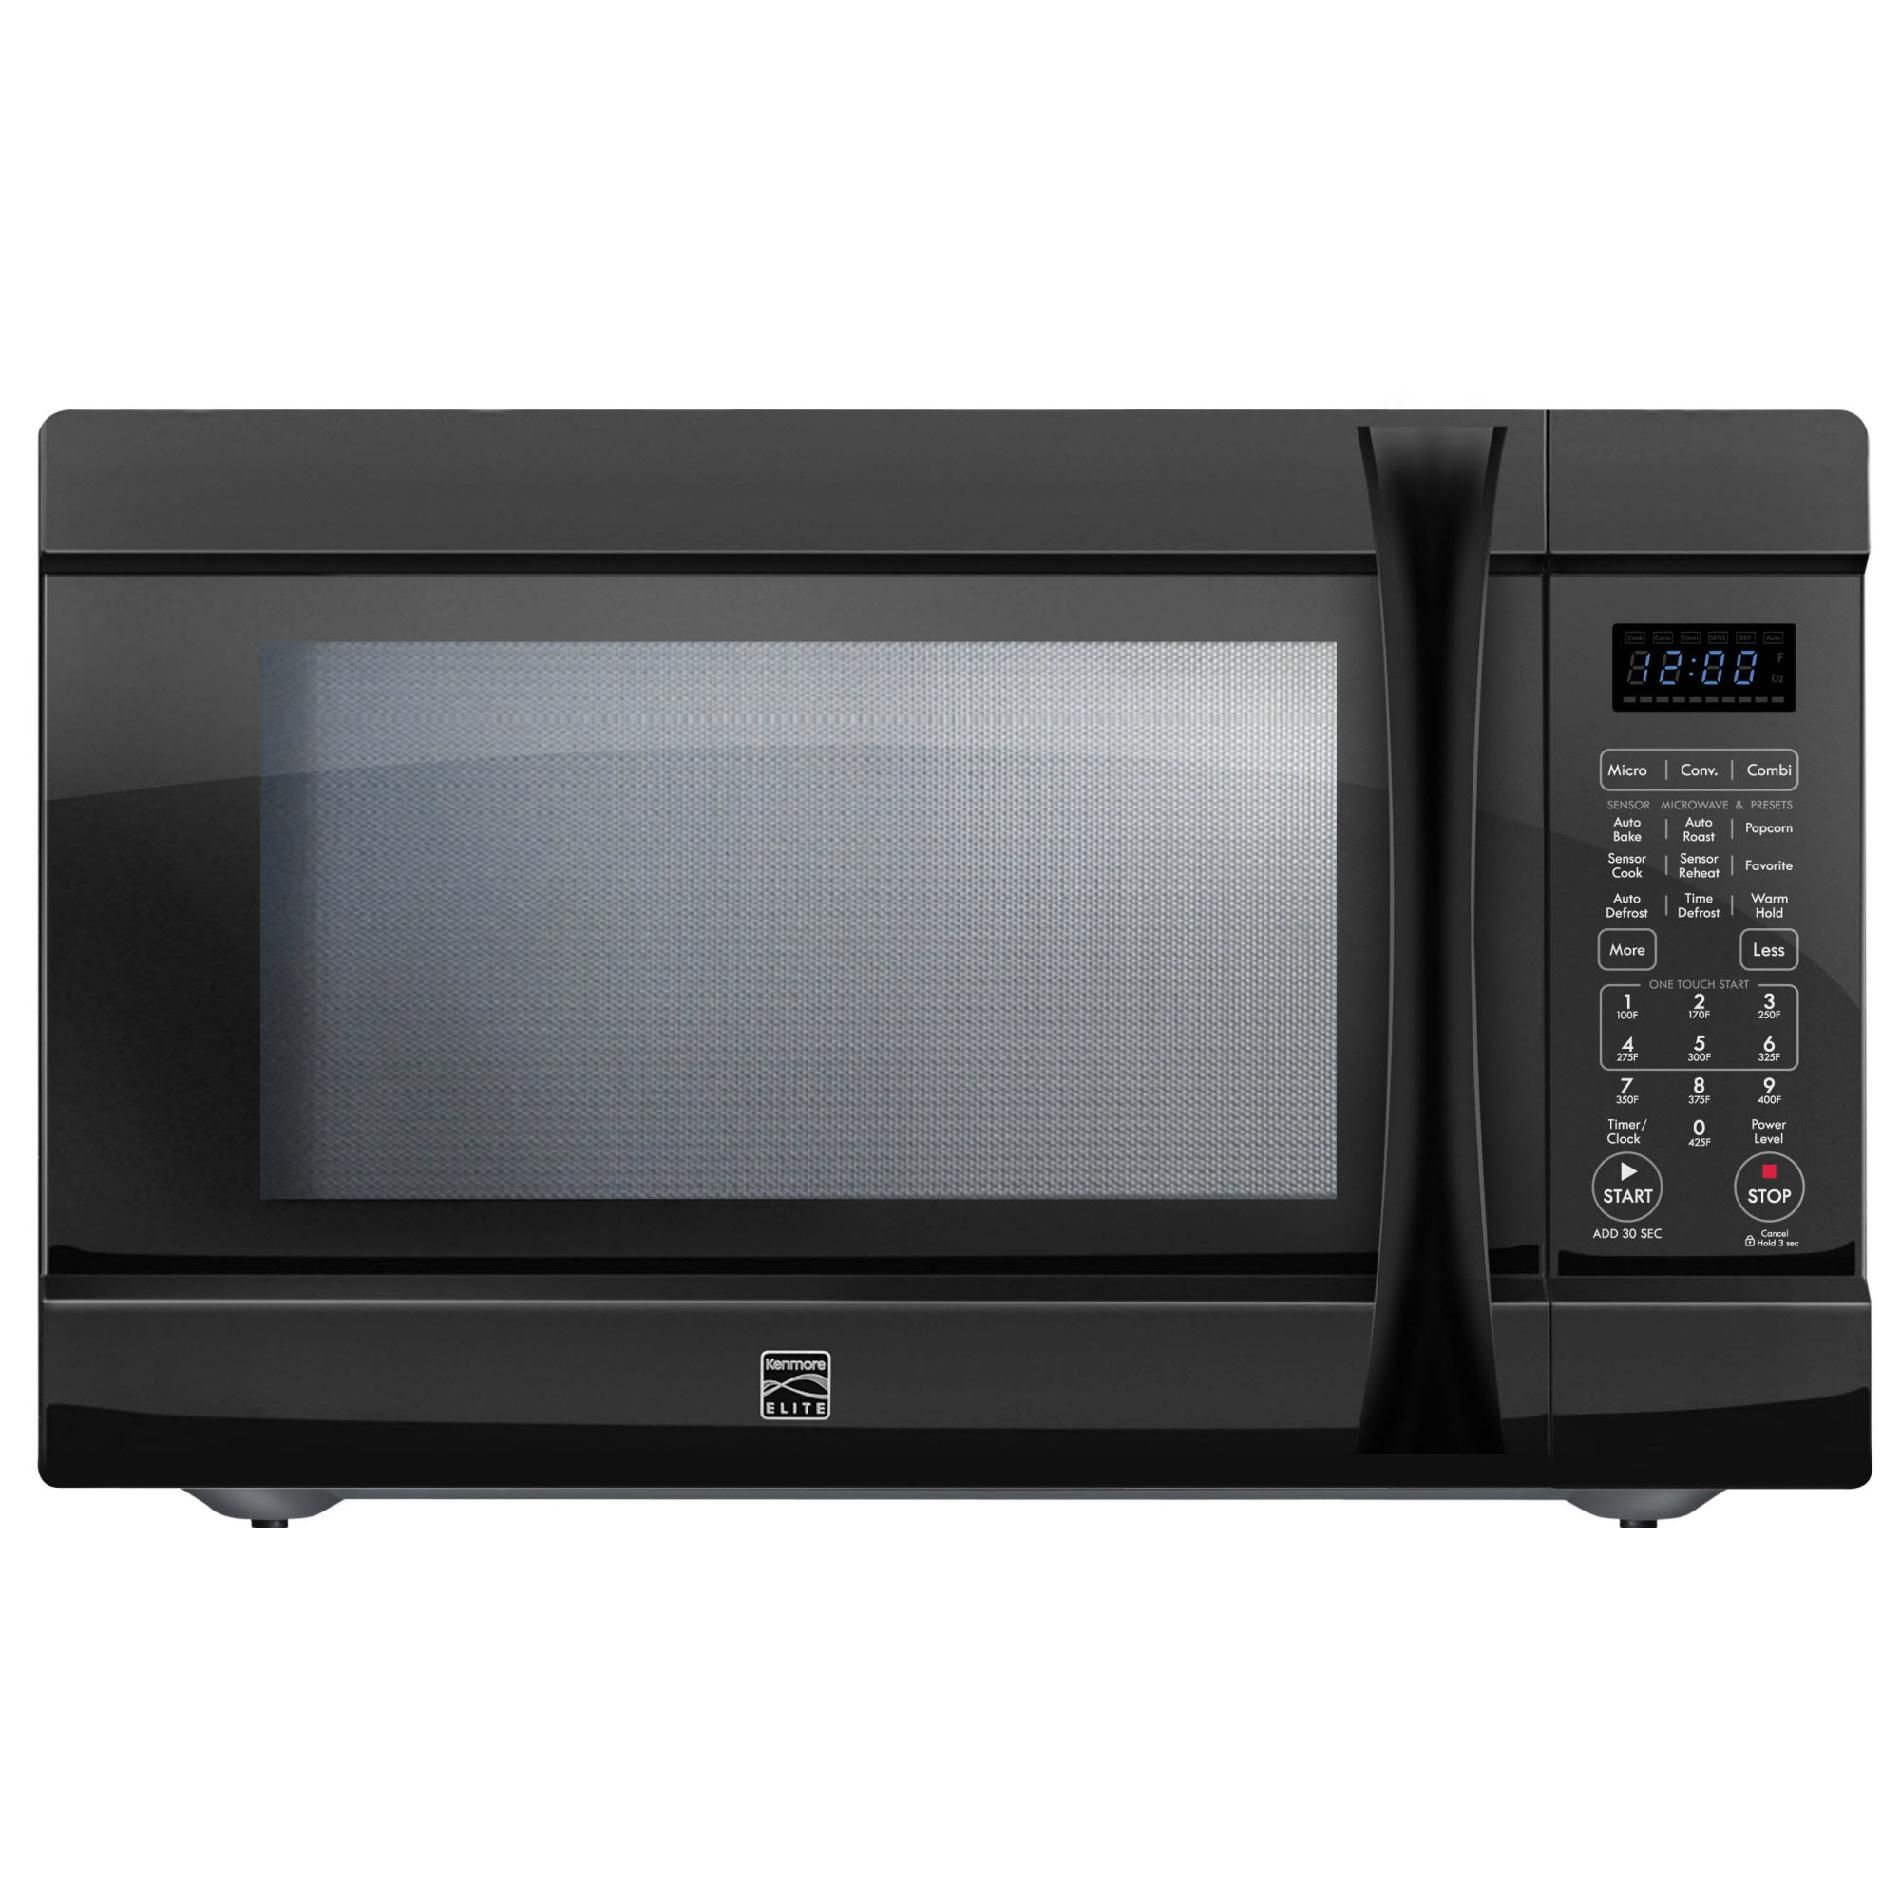 Countertop Microwave Convection Ovens Kenmore Elite 1 5 Cu Ft Countertop Microwave W